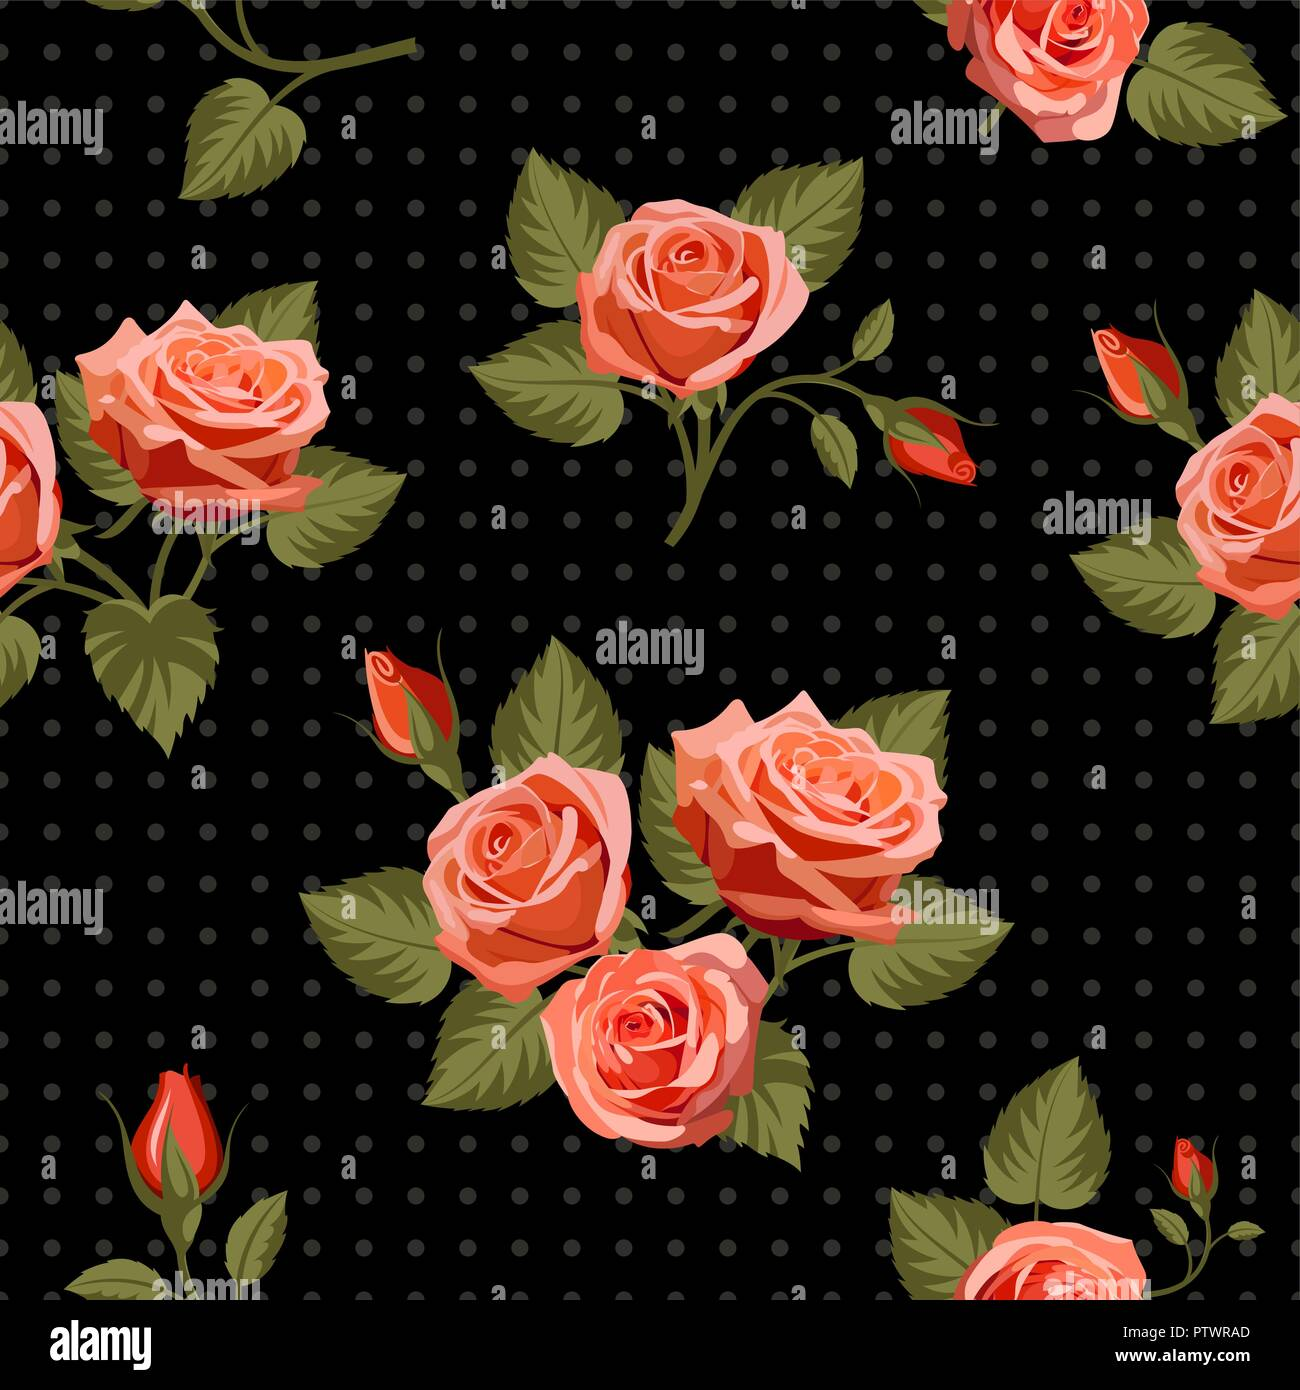 Floral Background Senza Giunture Con Rose Rosse Sul Nero Utilizzare